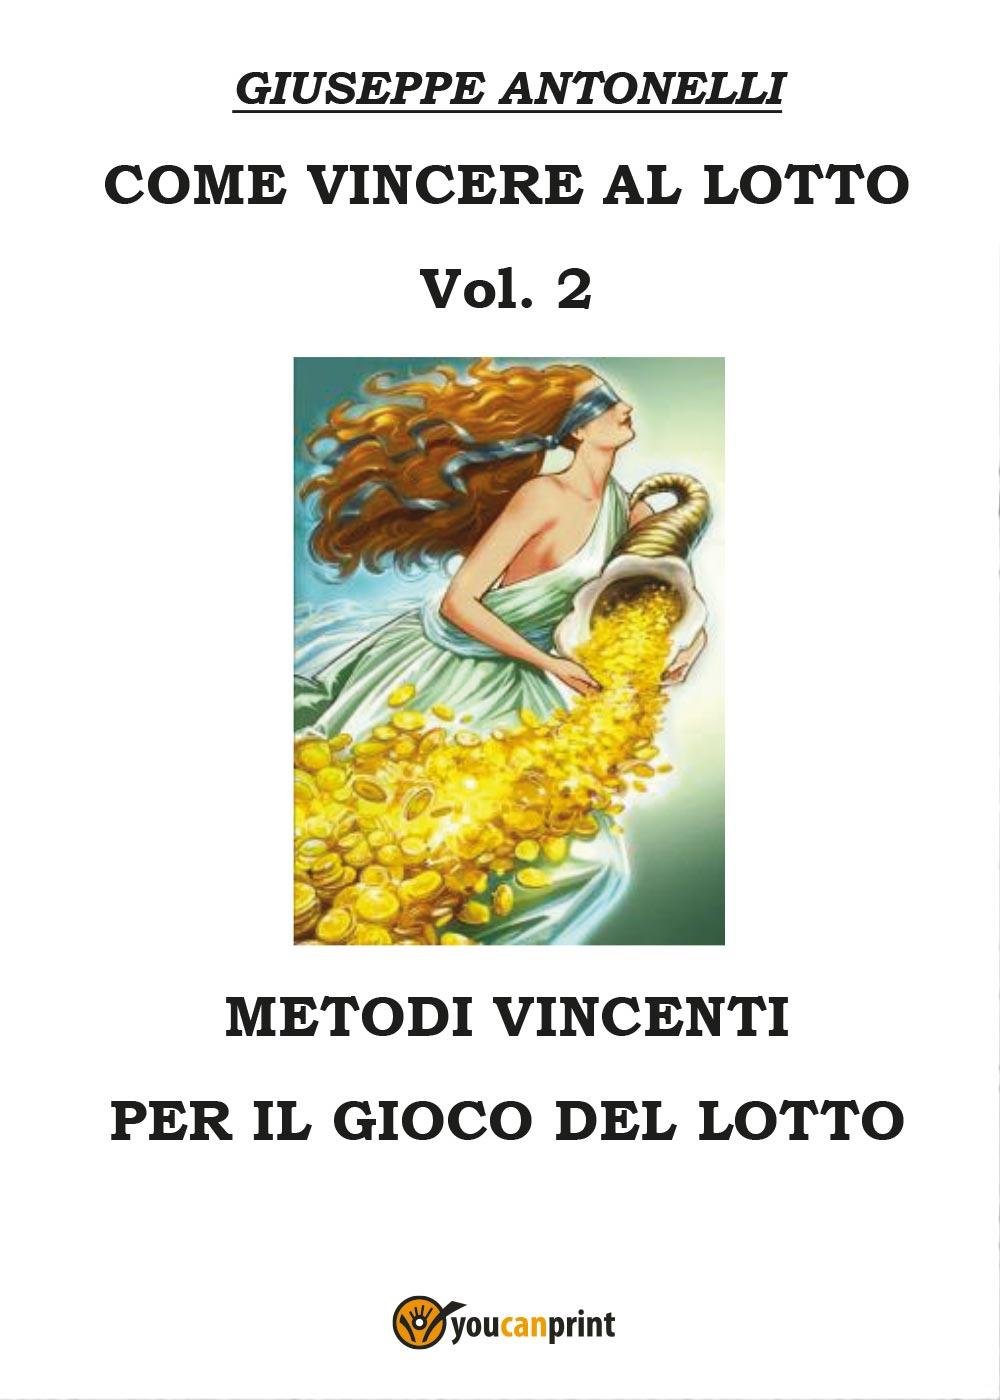 Come vincere al lotto Vol.2